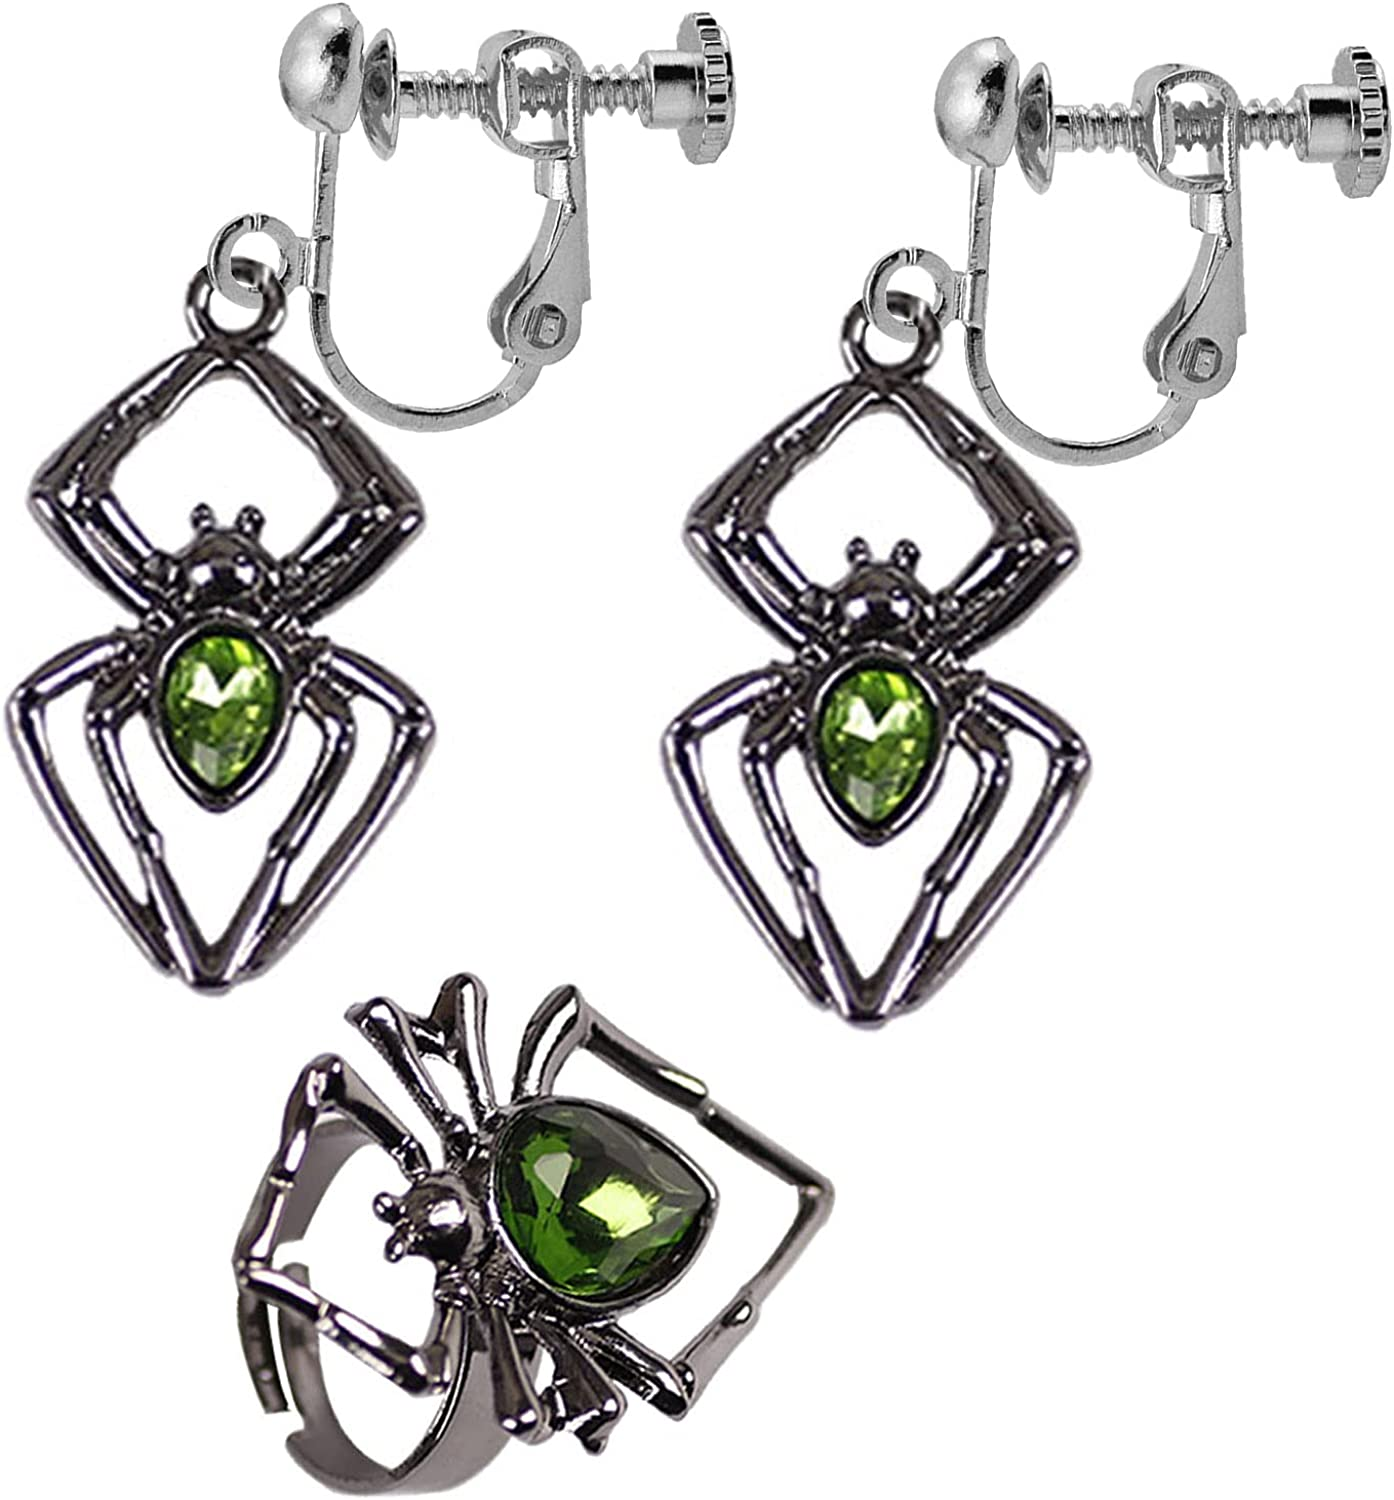 Clip on Halloween Earrings Spider Earrings Non Pierced with Open Ring Crystal Vintage Cosplay Jewelry for Women Teen Girls